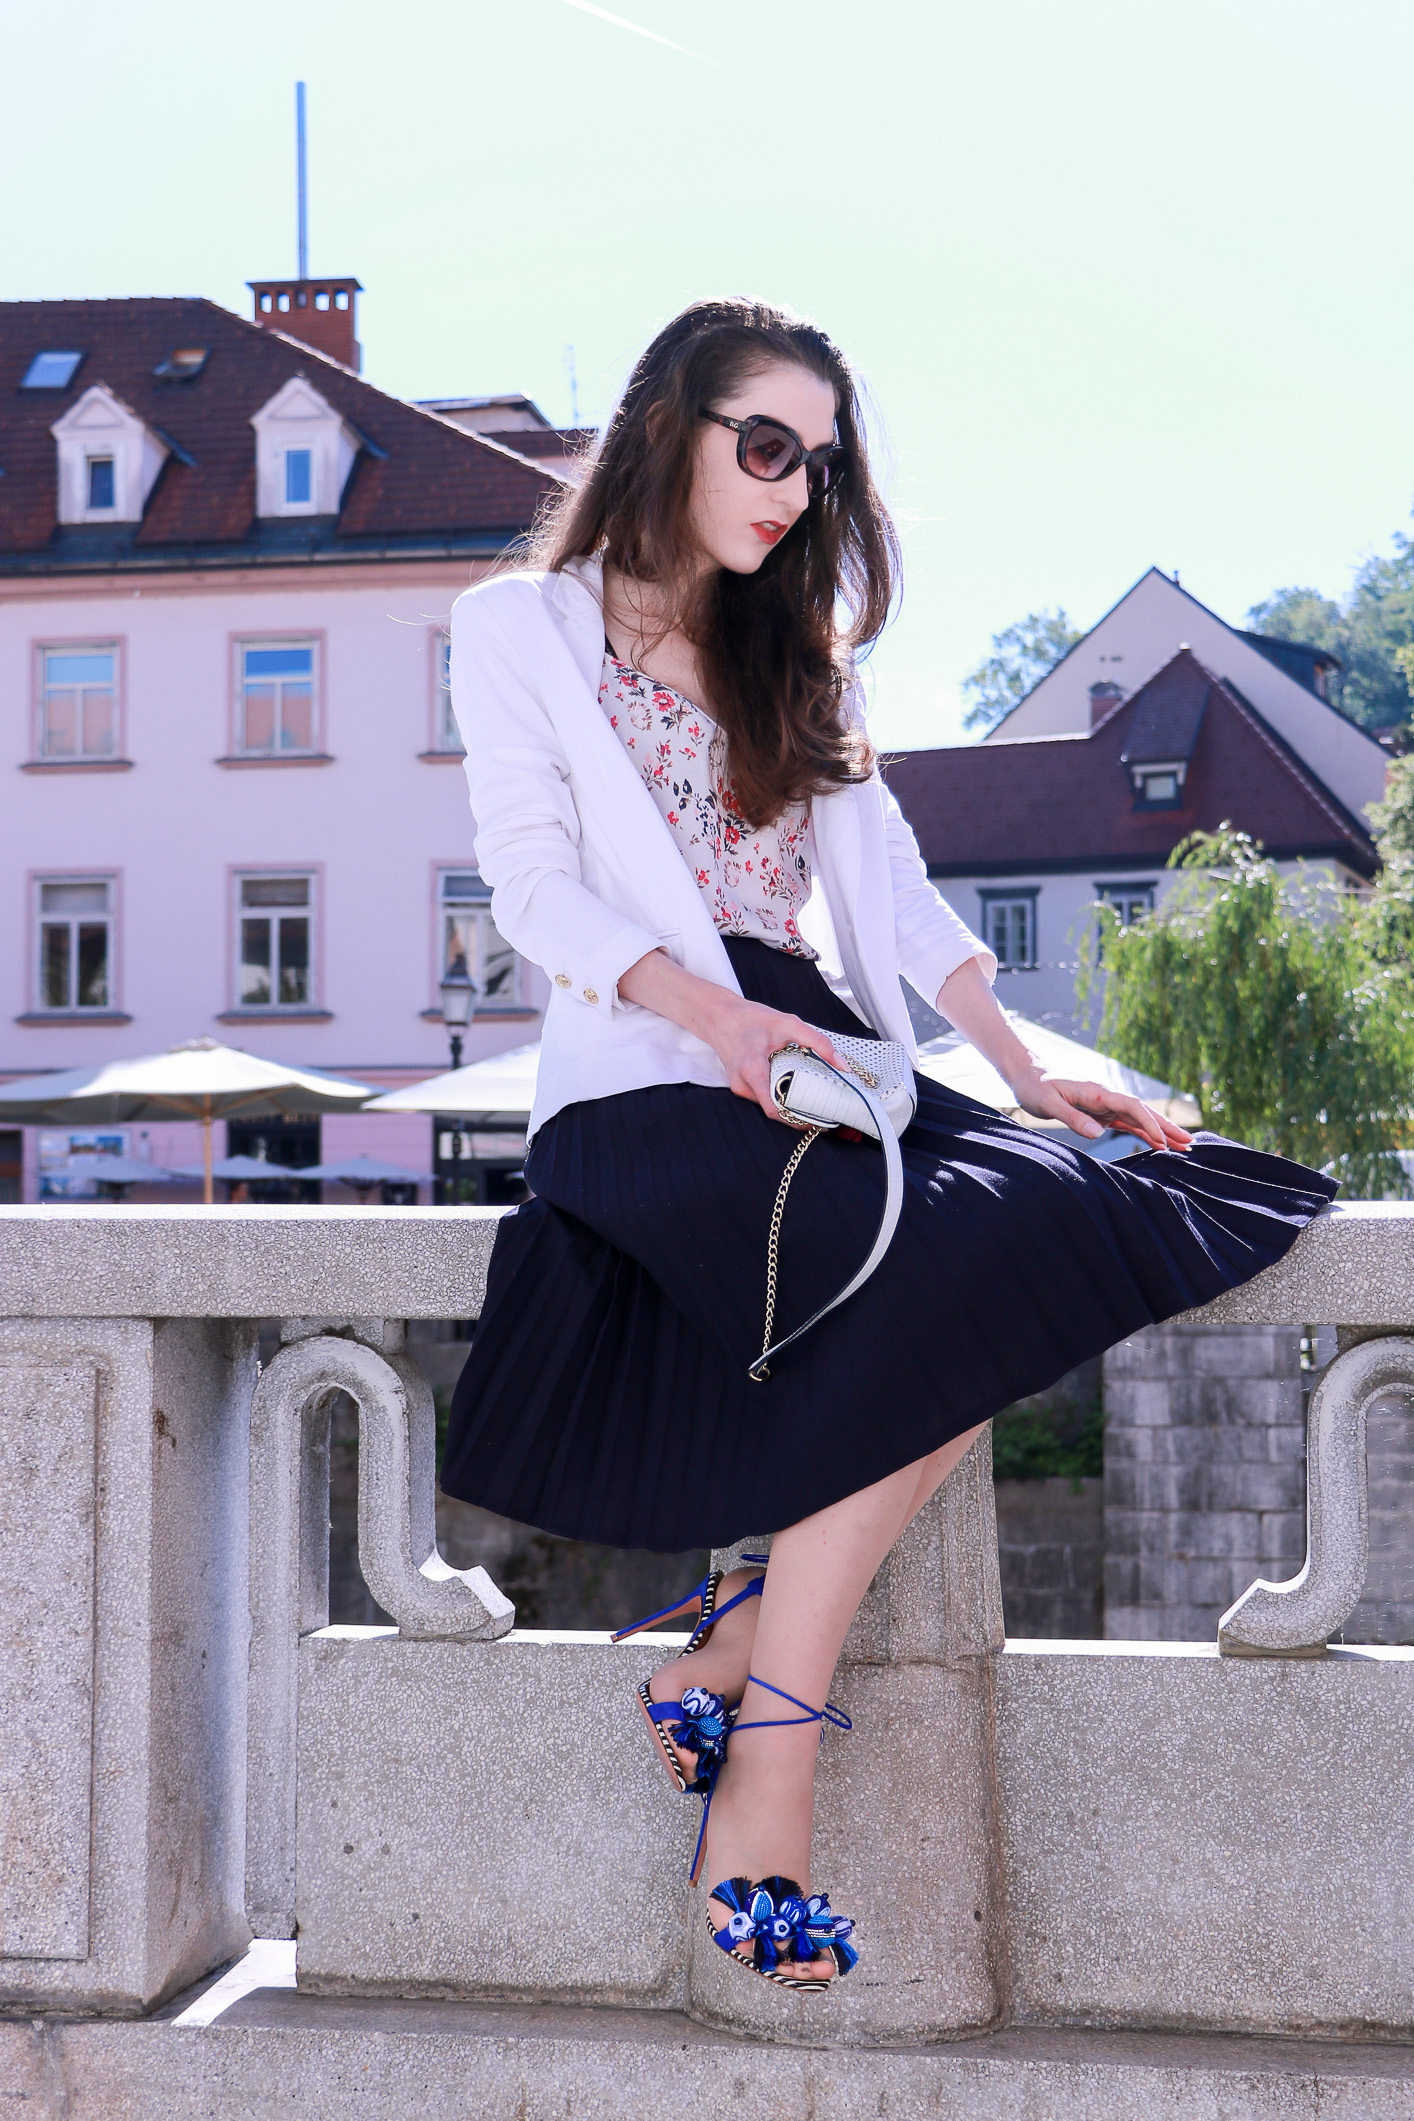 Fashion blogger Veronika Lipar of Brunette From Wall Street sharing how to style black vintage pleated midi skirt, blue Tropicana tasseled beaded sandals from Aquazzura, floral top, and white blazer for a chic summer look